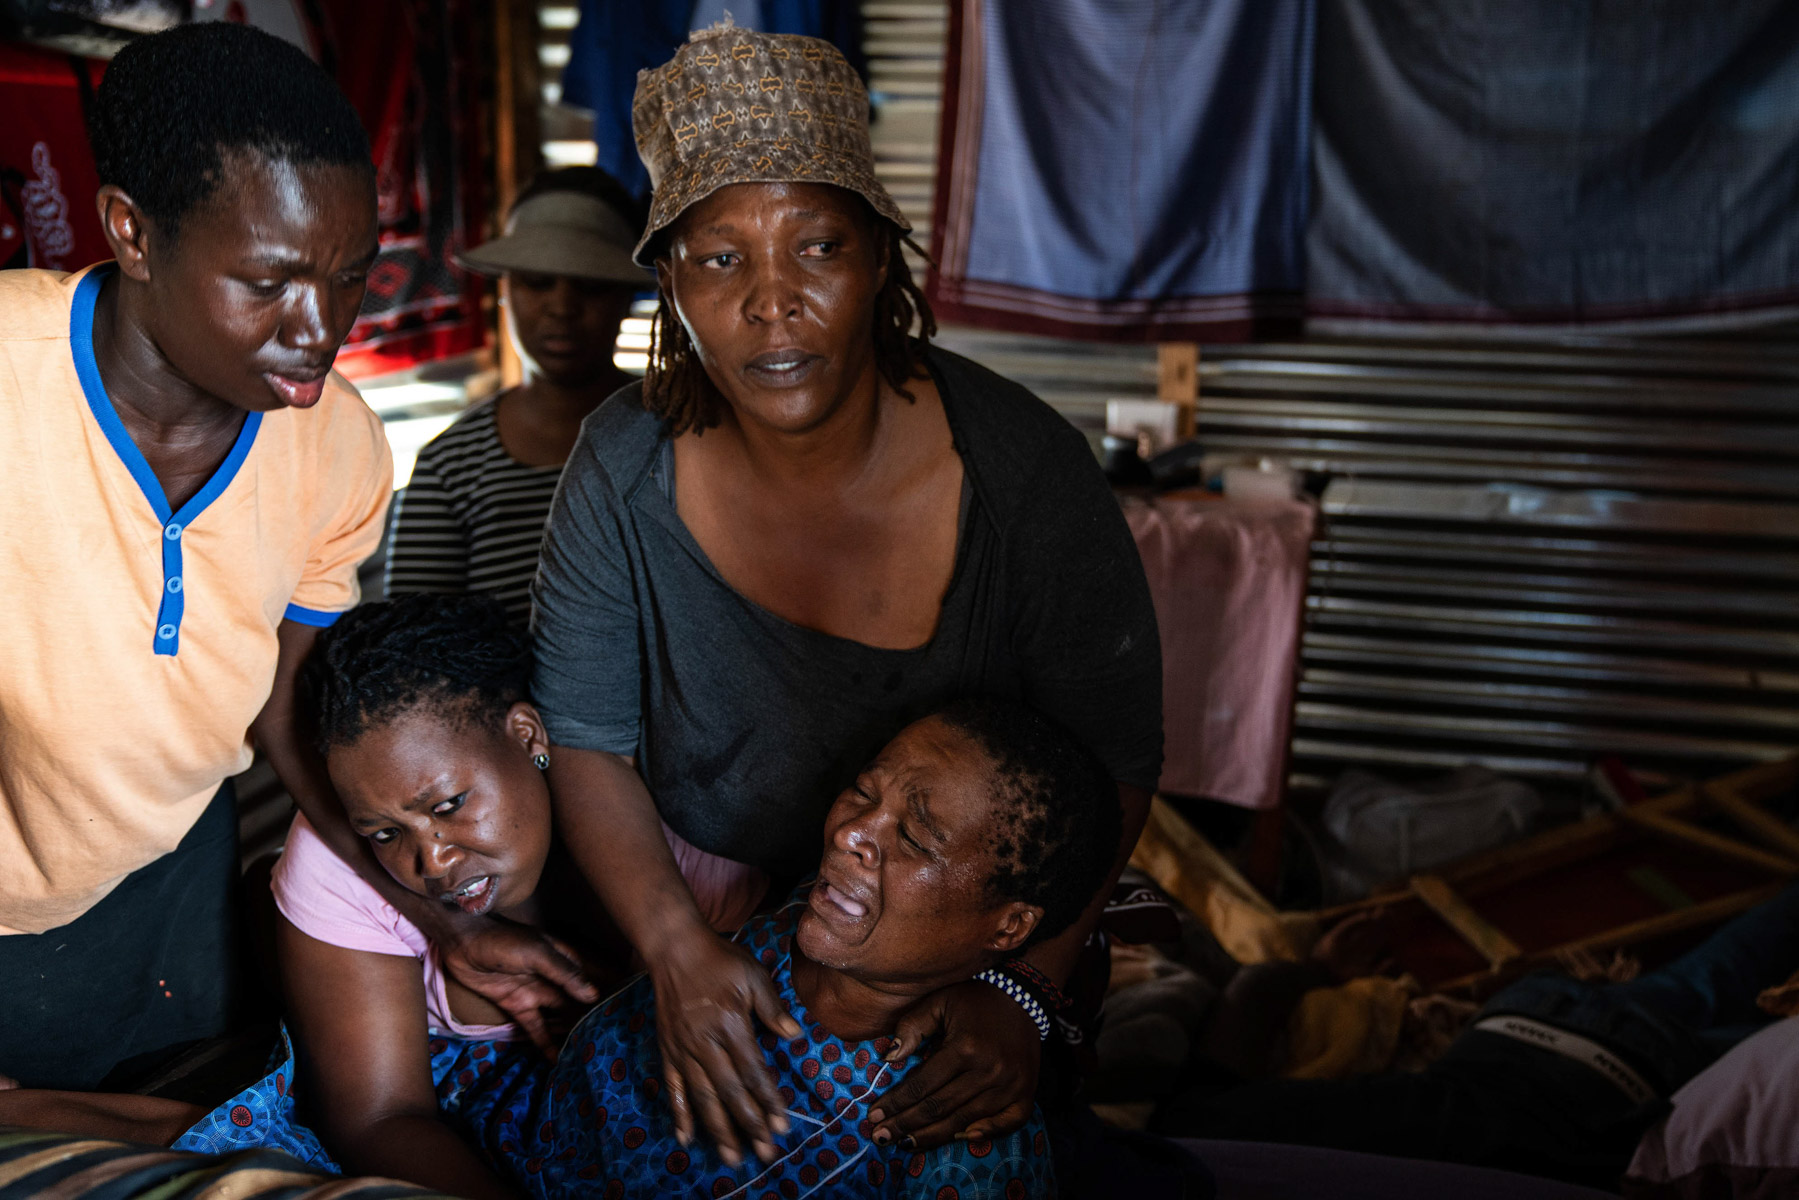 21 April 2020: Lindiwe Ndlovu helps Victoria Maphalale moments before she has a seizure. Police, who stormed the shack and fired rubber bullets, refused to take Maphalale to a clinic to receive medical attention. (Photograph by James Oatway)